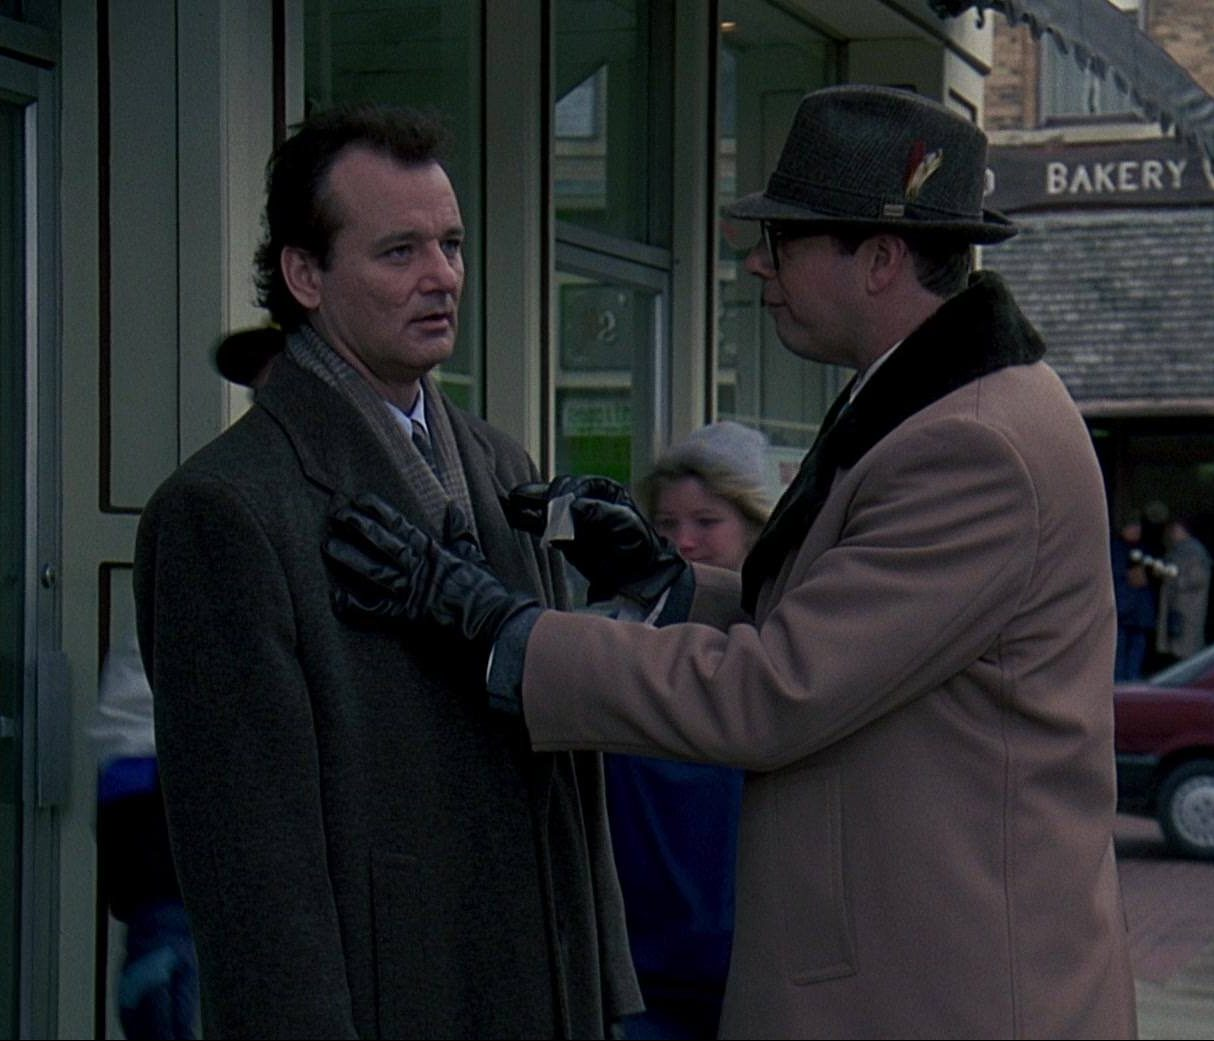 16 11 e1601285876244 20 Things You Might Not Have Realised About Groundhog Day